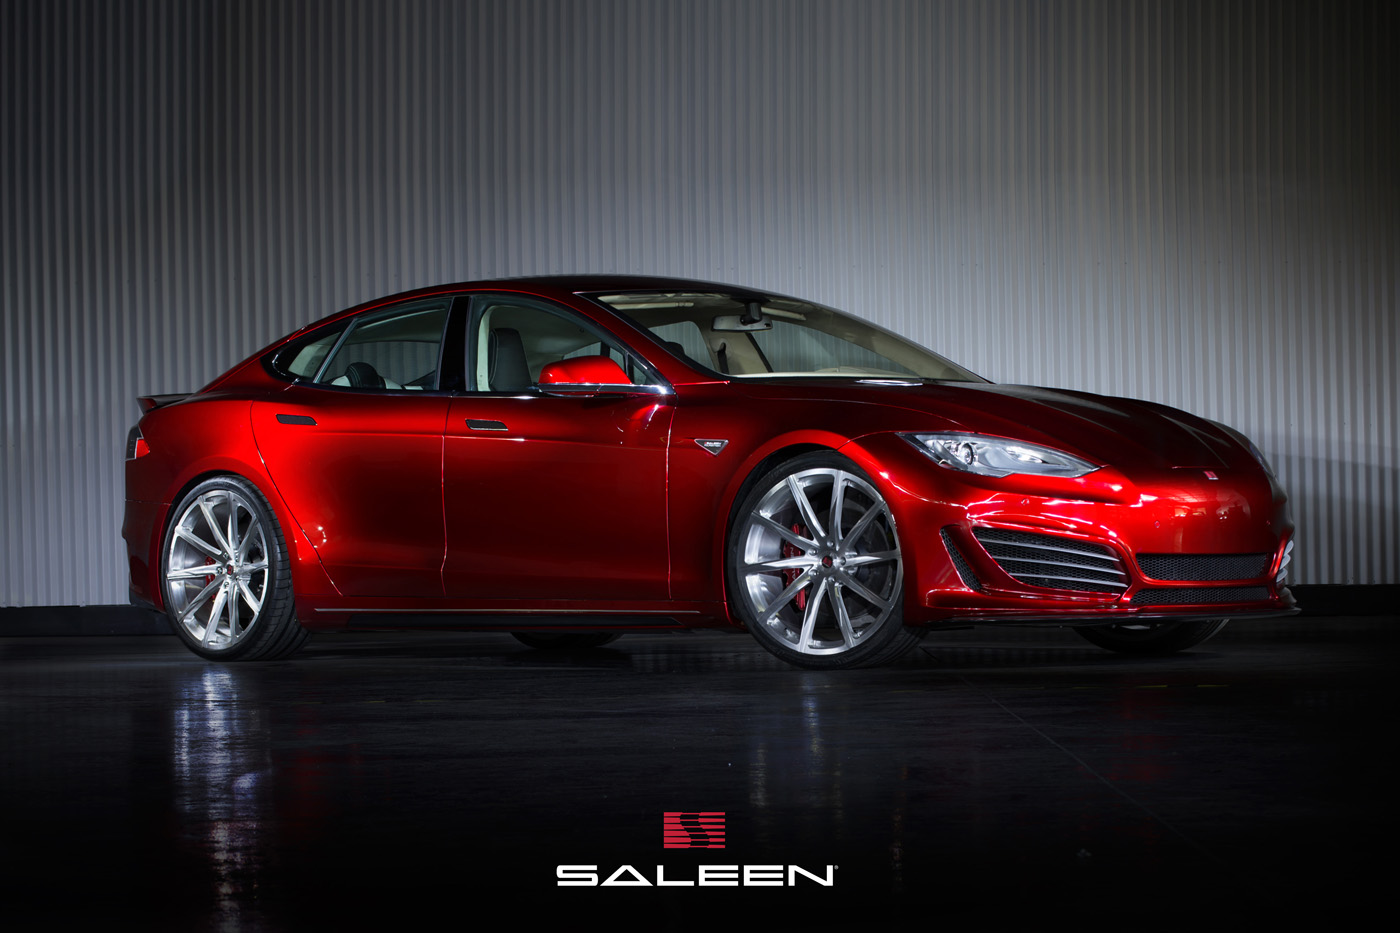 THE ALL-ELECTRIC ALL-PERFORMANCE SALEEN FOURSIXTEEN